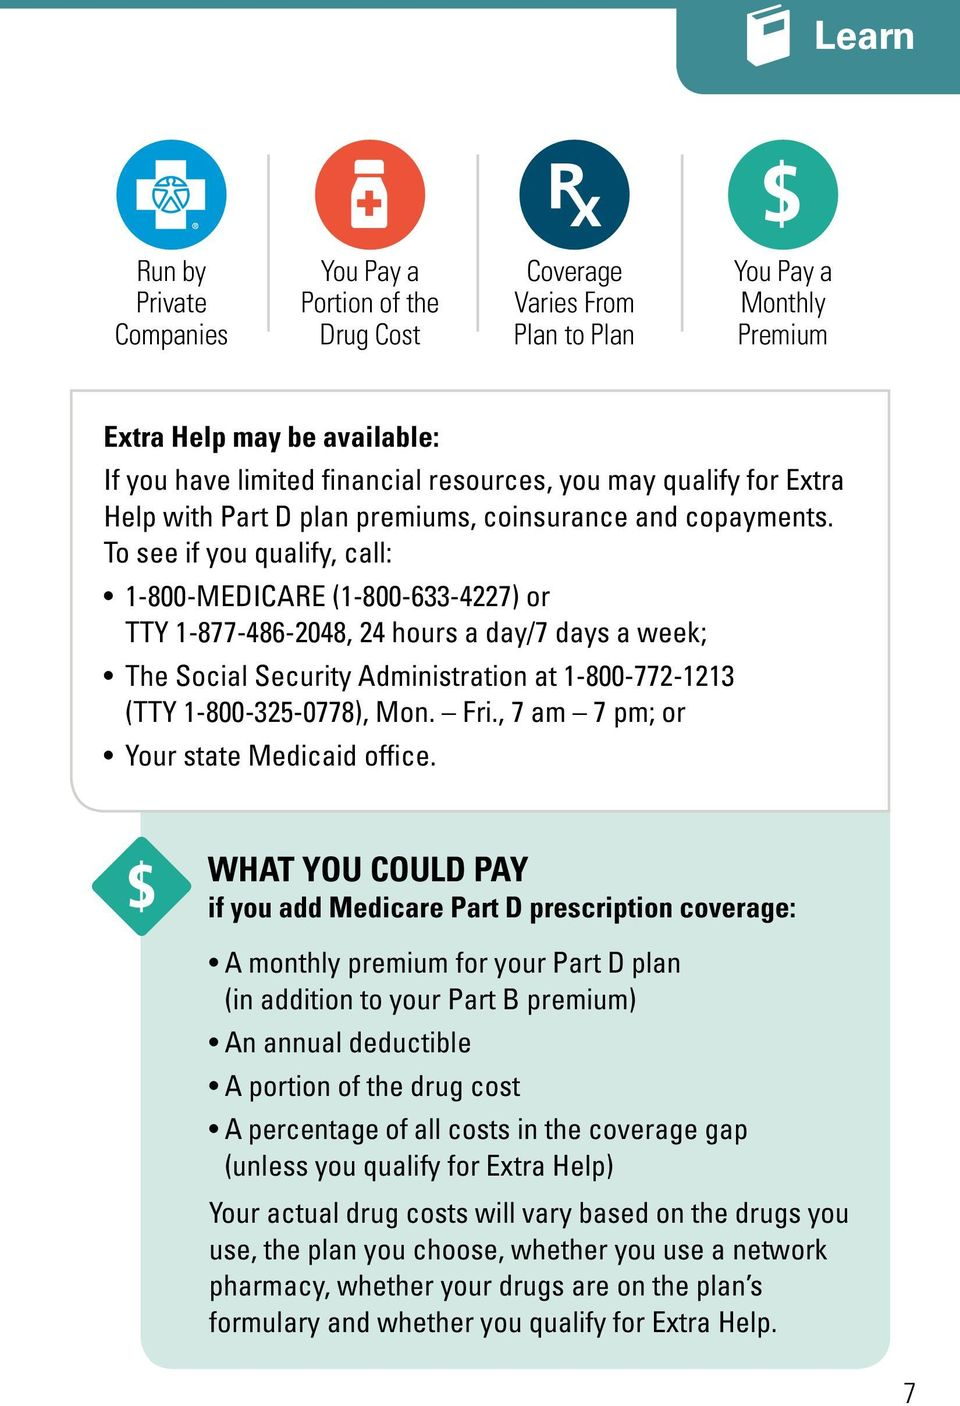 To see if you qualify, call: 1-800-MEDICARE (1-800-633-4227) or TTY 1-877-486-2048, 24 hours a day/7 days a week; The Social Security Administration at 1-800-772-1213 (TTY 1-800-325-0778), Mon. Fri.